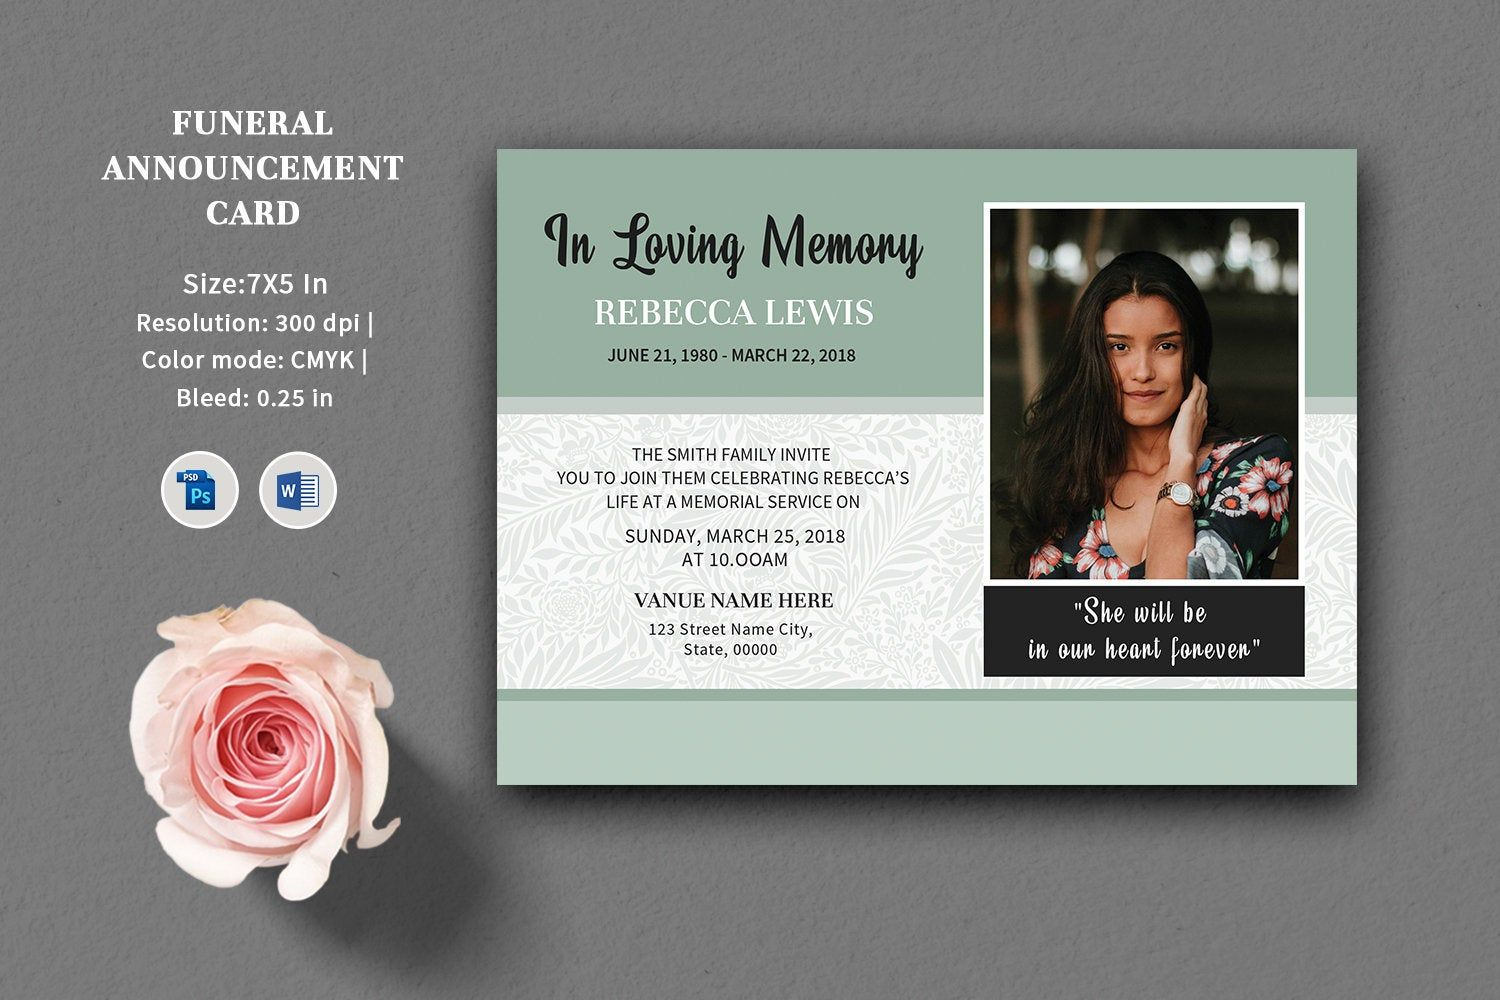 Funeral Announcement and Invitation Card Template | MS Word & Photoshop  Template | Instant Download | V08 | Funeral program template, Funeral,  Invitations